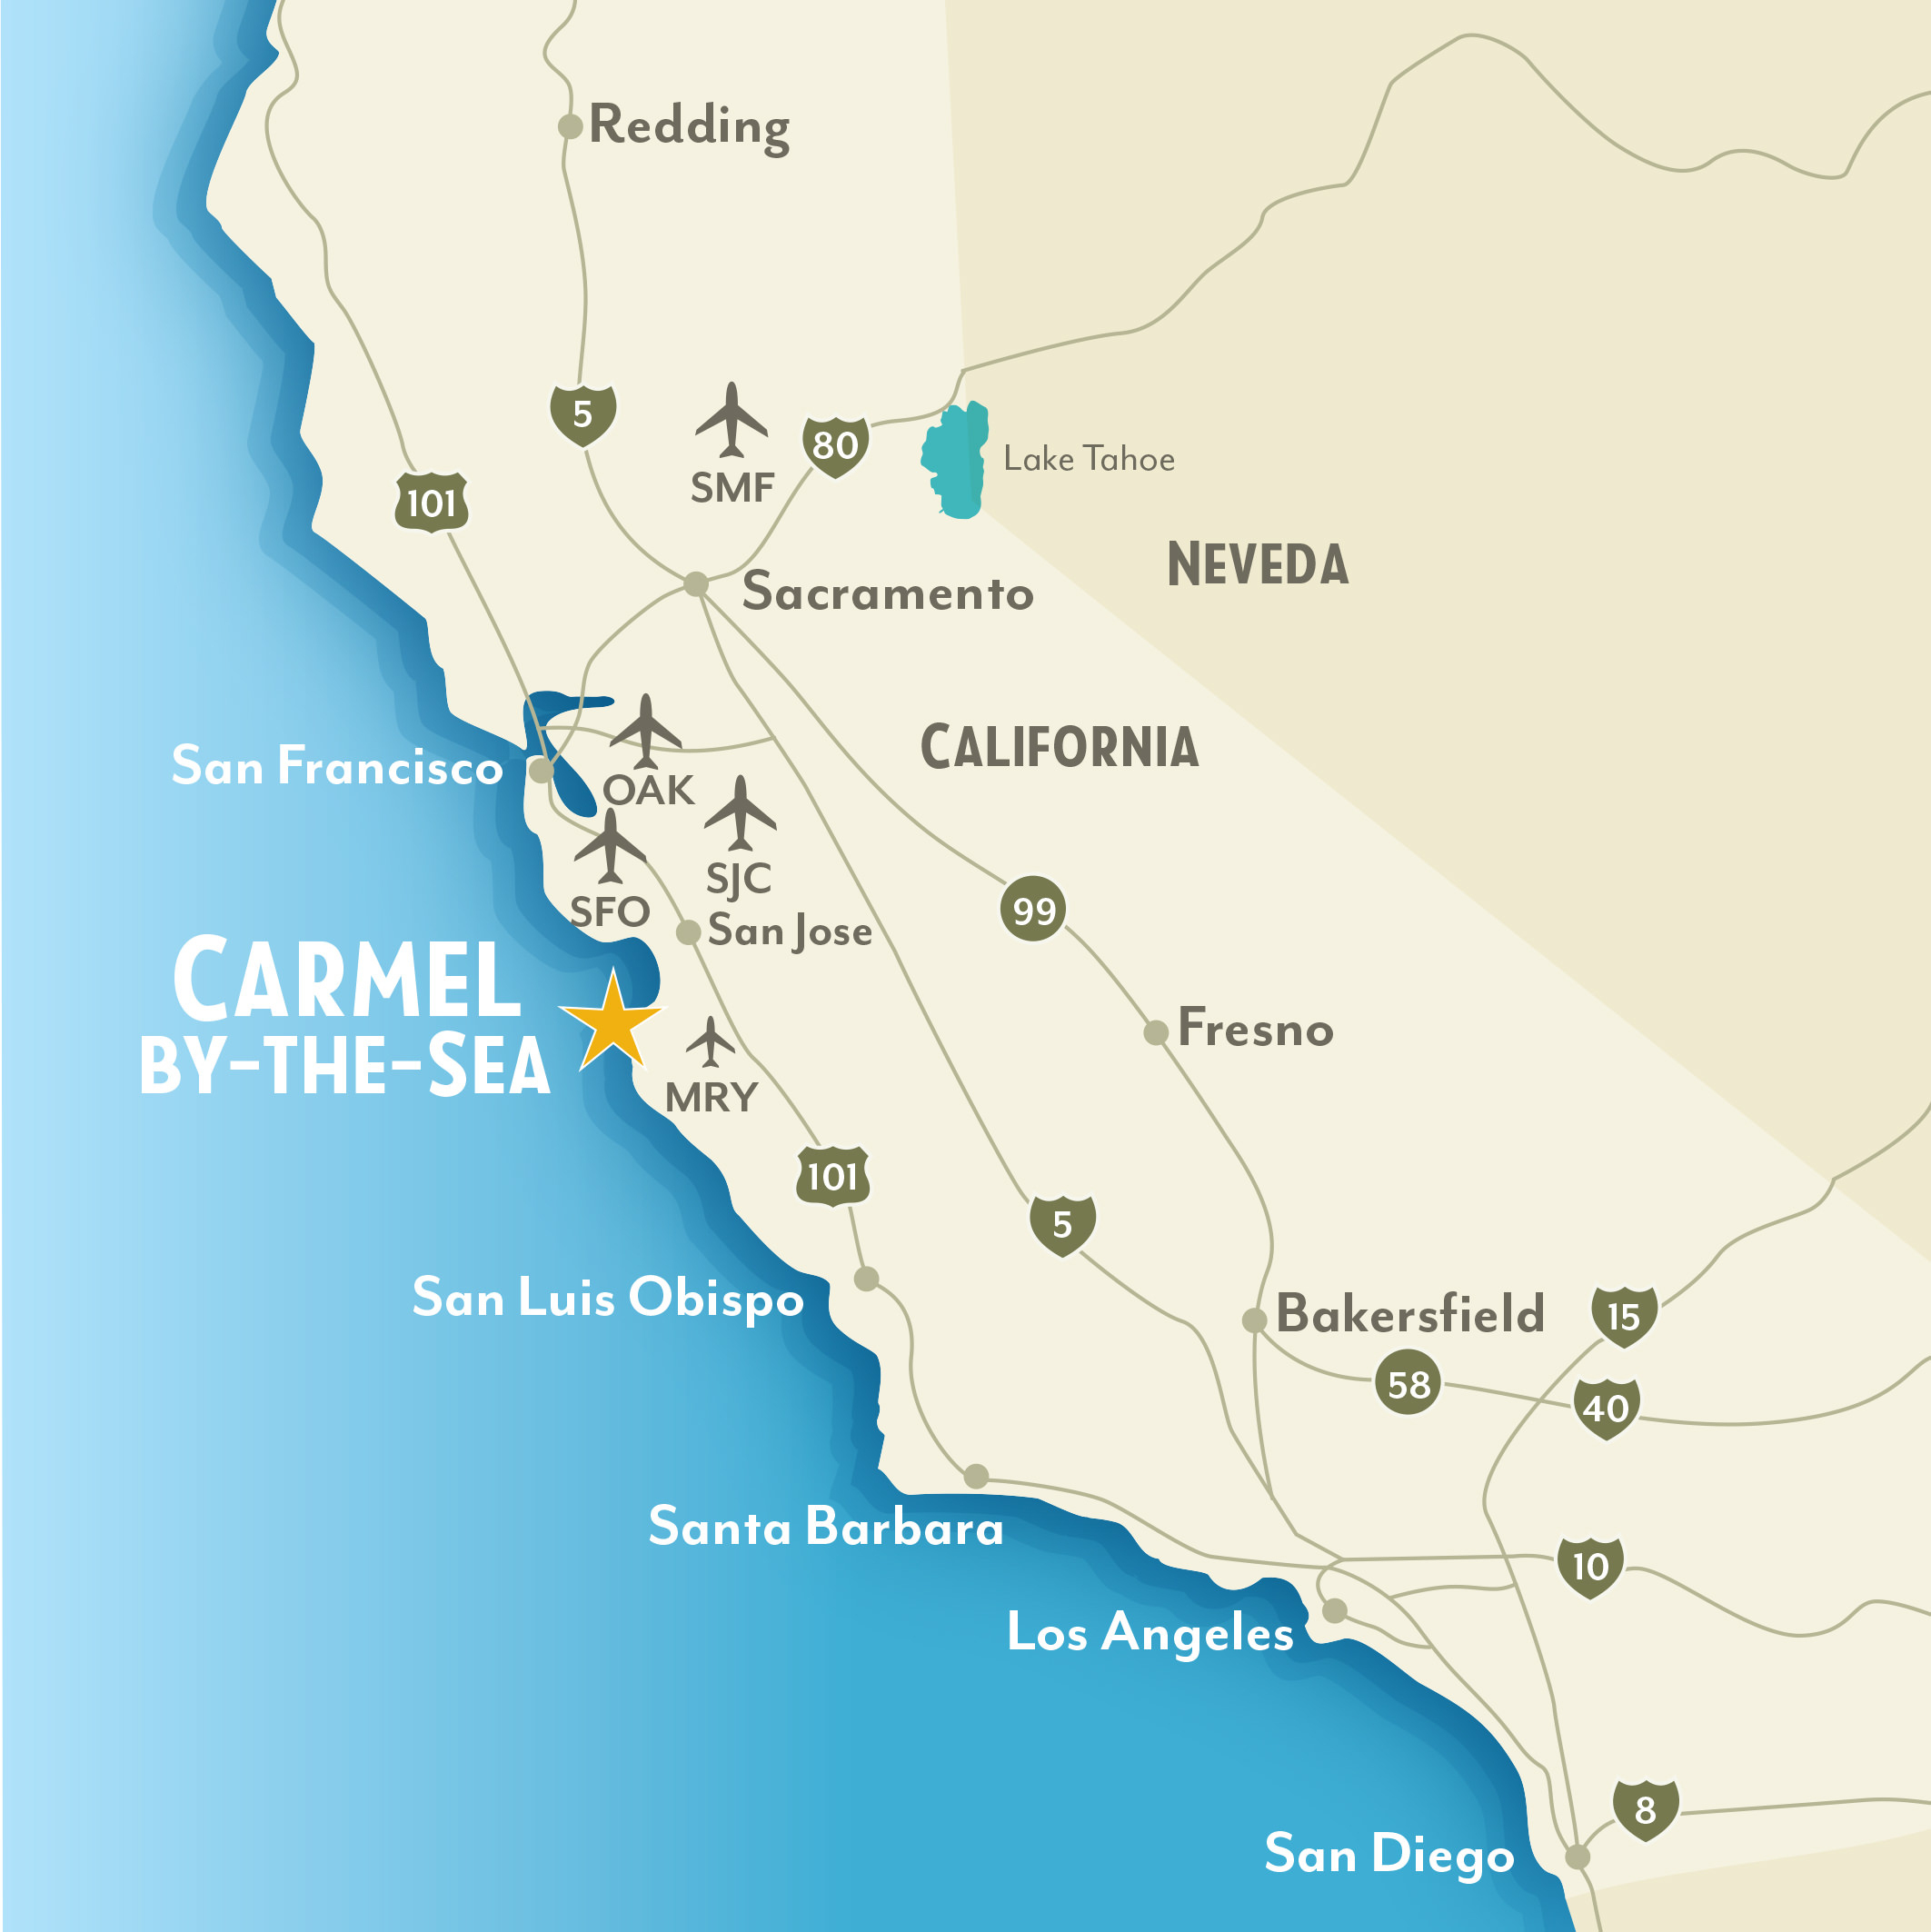 Visit Carmel Ca Map Maps With Zone Of Northern California Beaches - Northern California Beaches Map